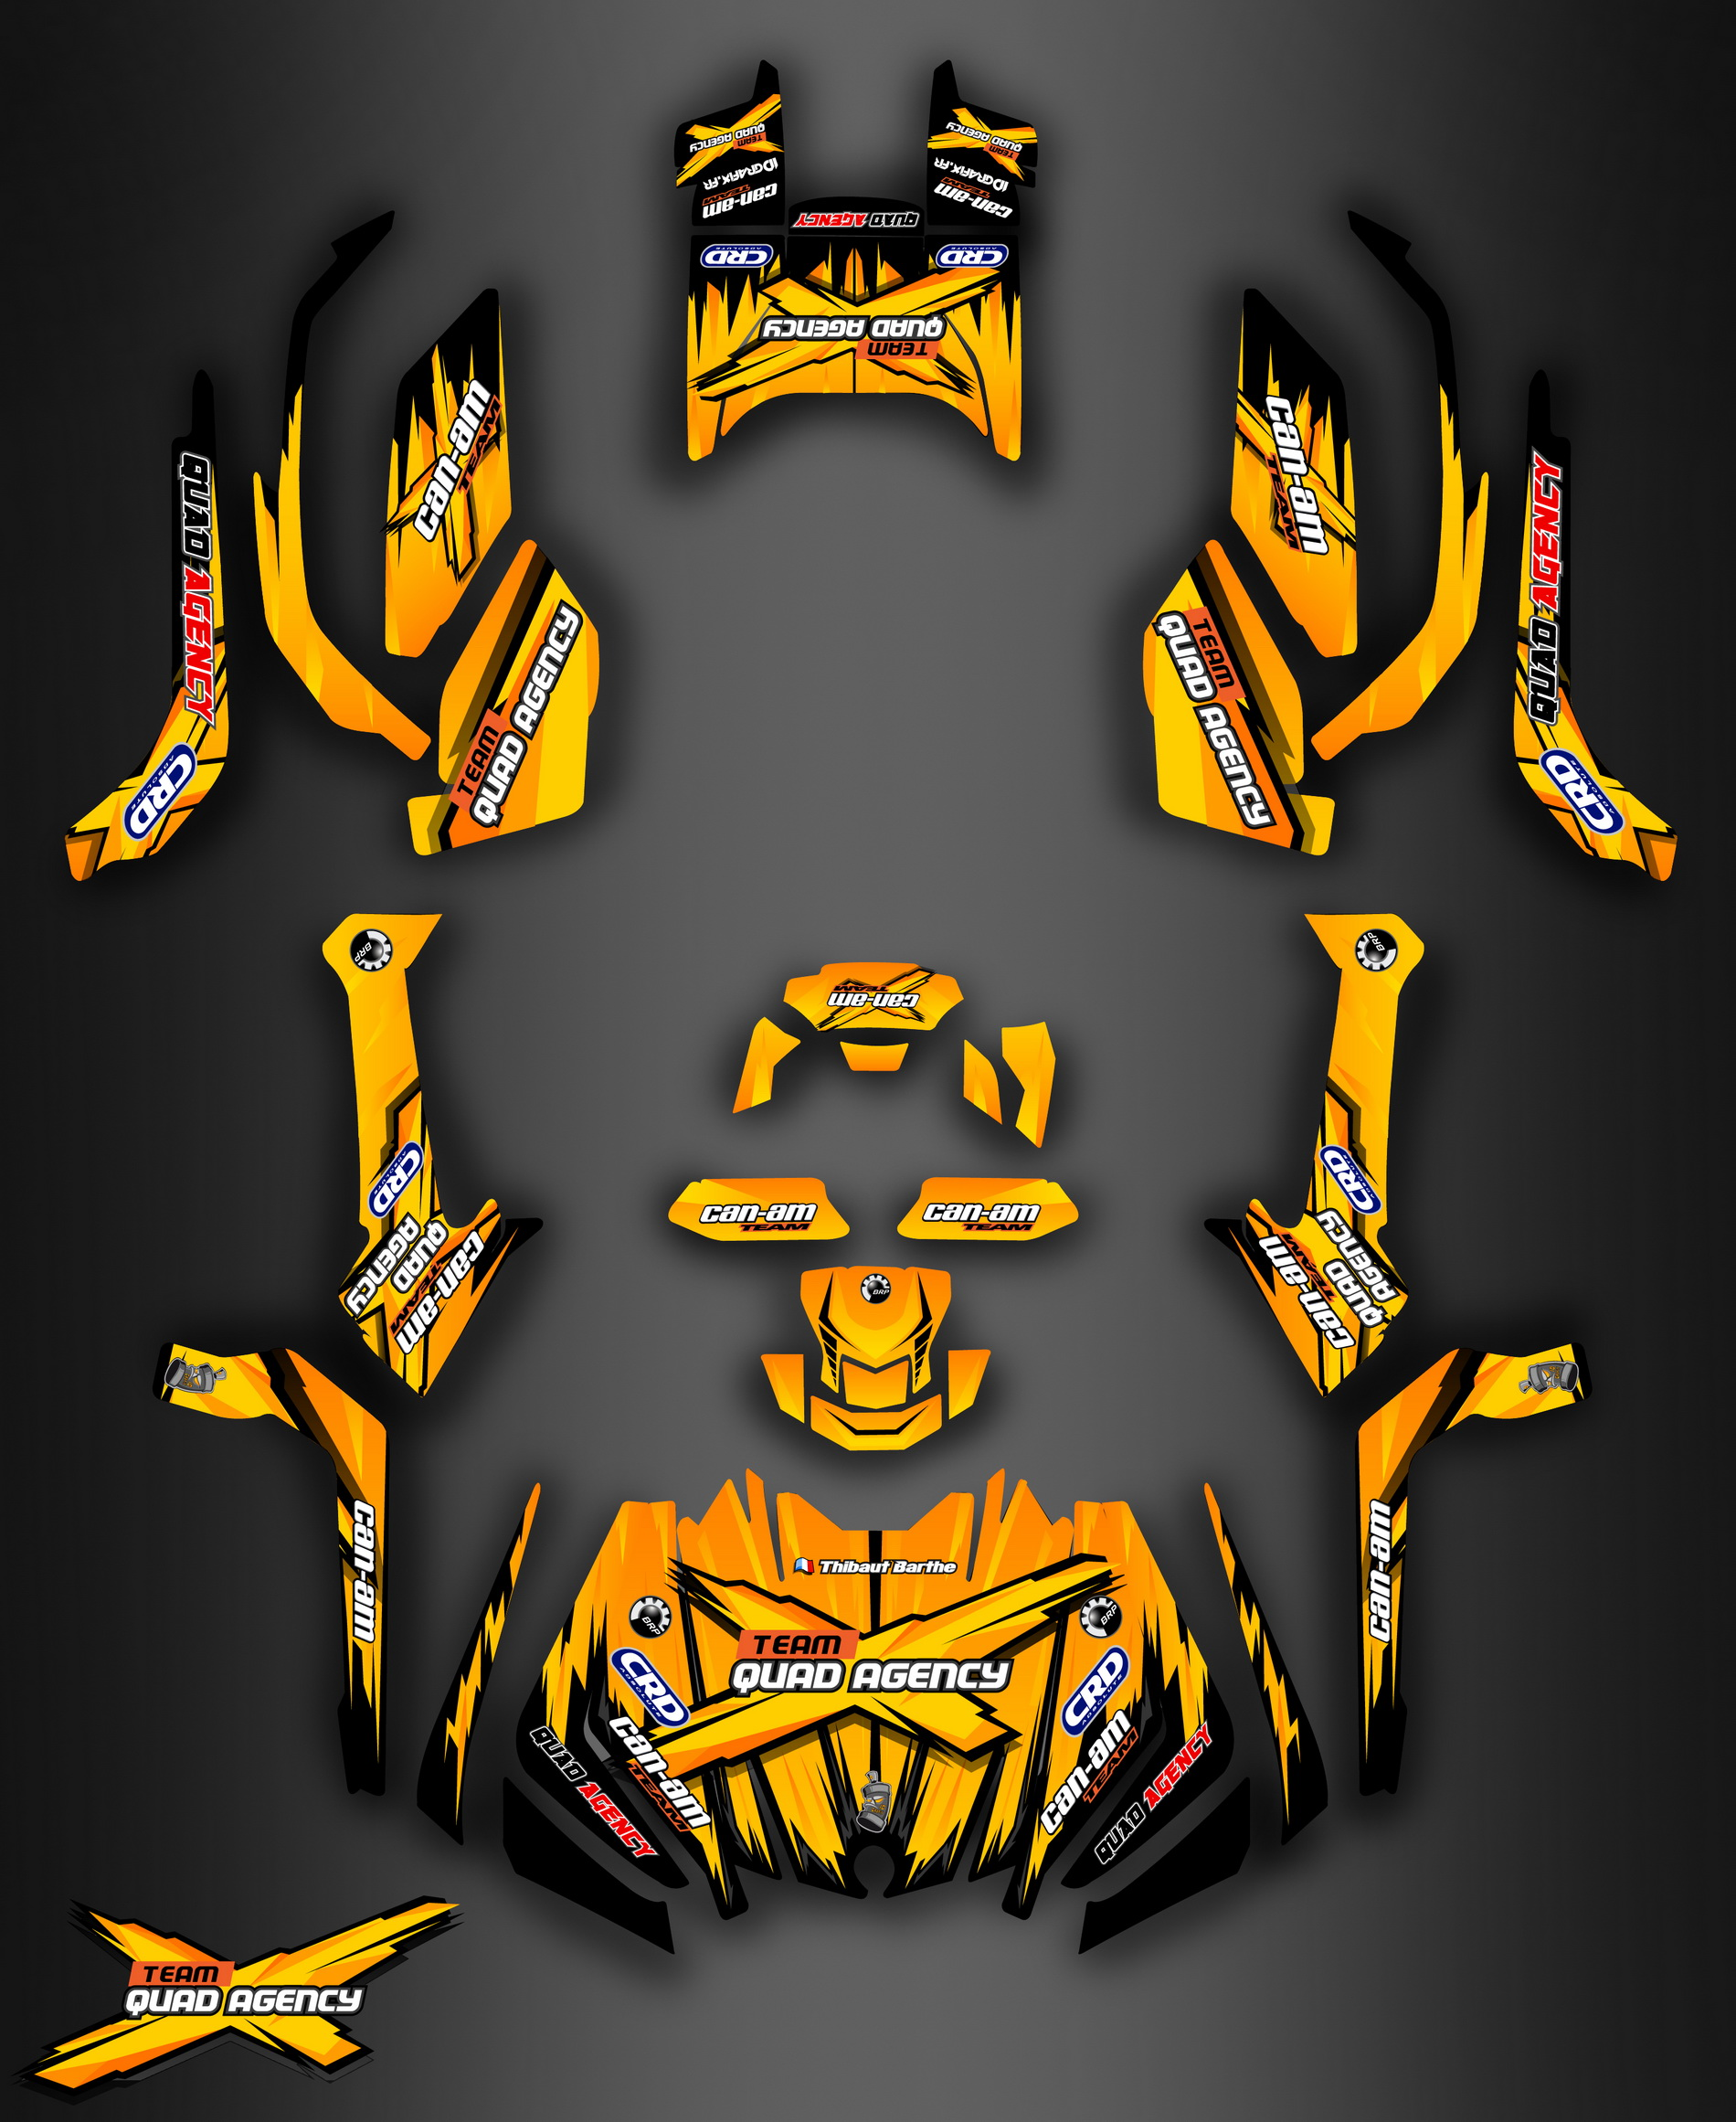 Kit déco idgrafix pour le Team quad agency 66 , Can Am 1000 Outlander